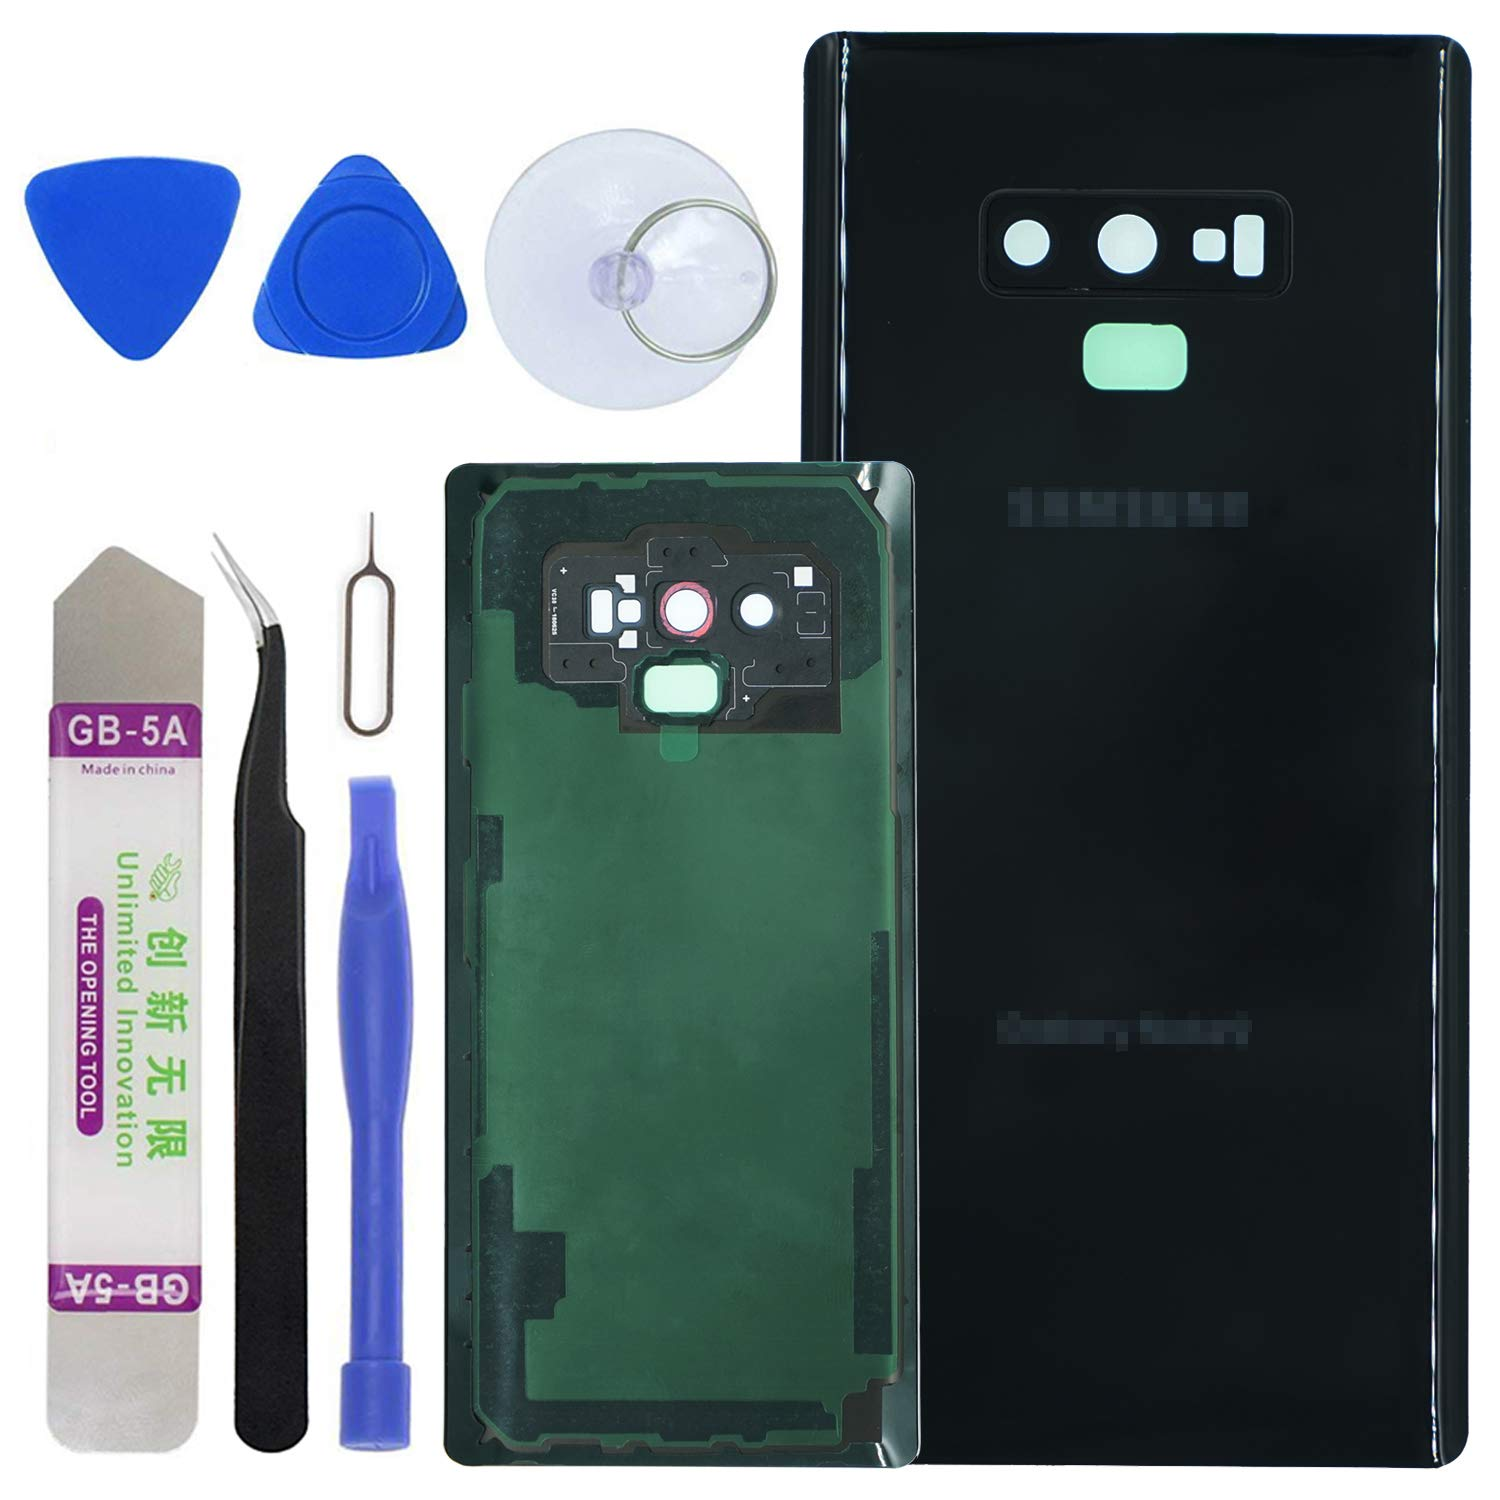 LUVSS Rear Glass Assembly for [Samsung Galaxy Note 9] N960 Back Glass Panel Cover Case Housing Replacement + Camera Lens + Extra Adhesive with Opening Tools Kit (Midnight Black) by LUVSS